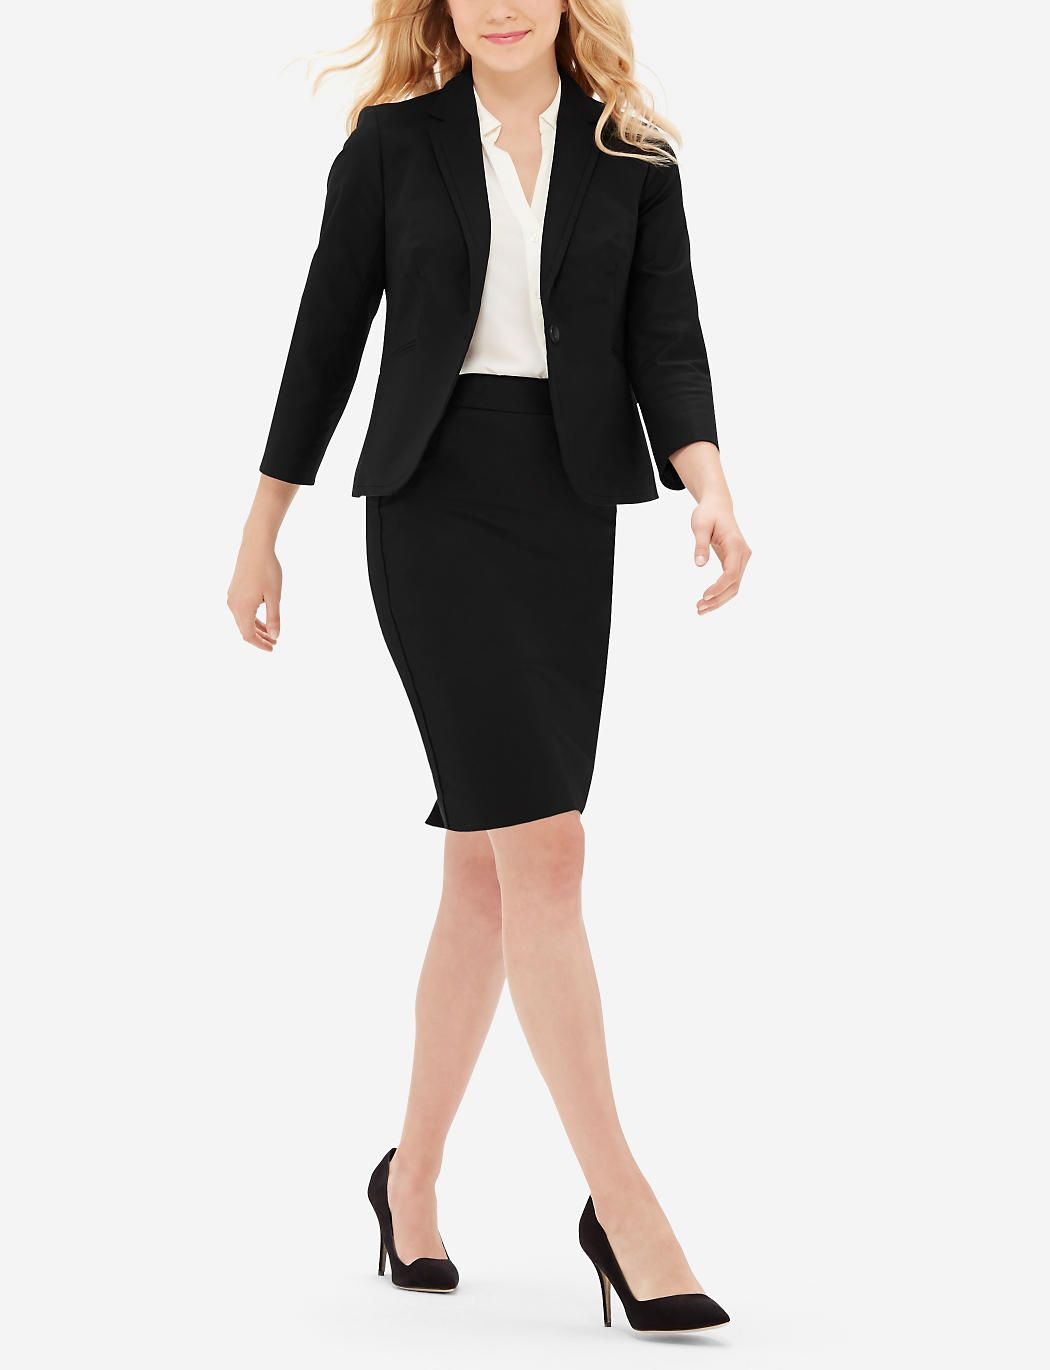 suits for women pants suit skirt suit womens business